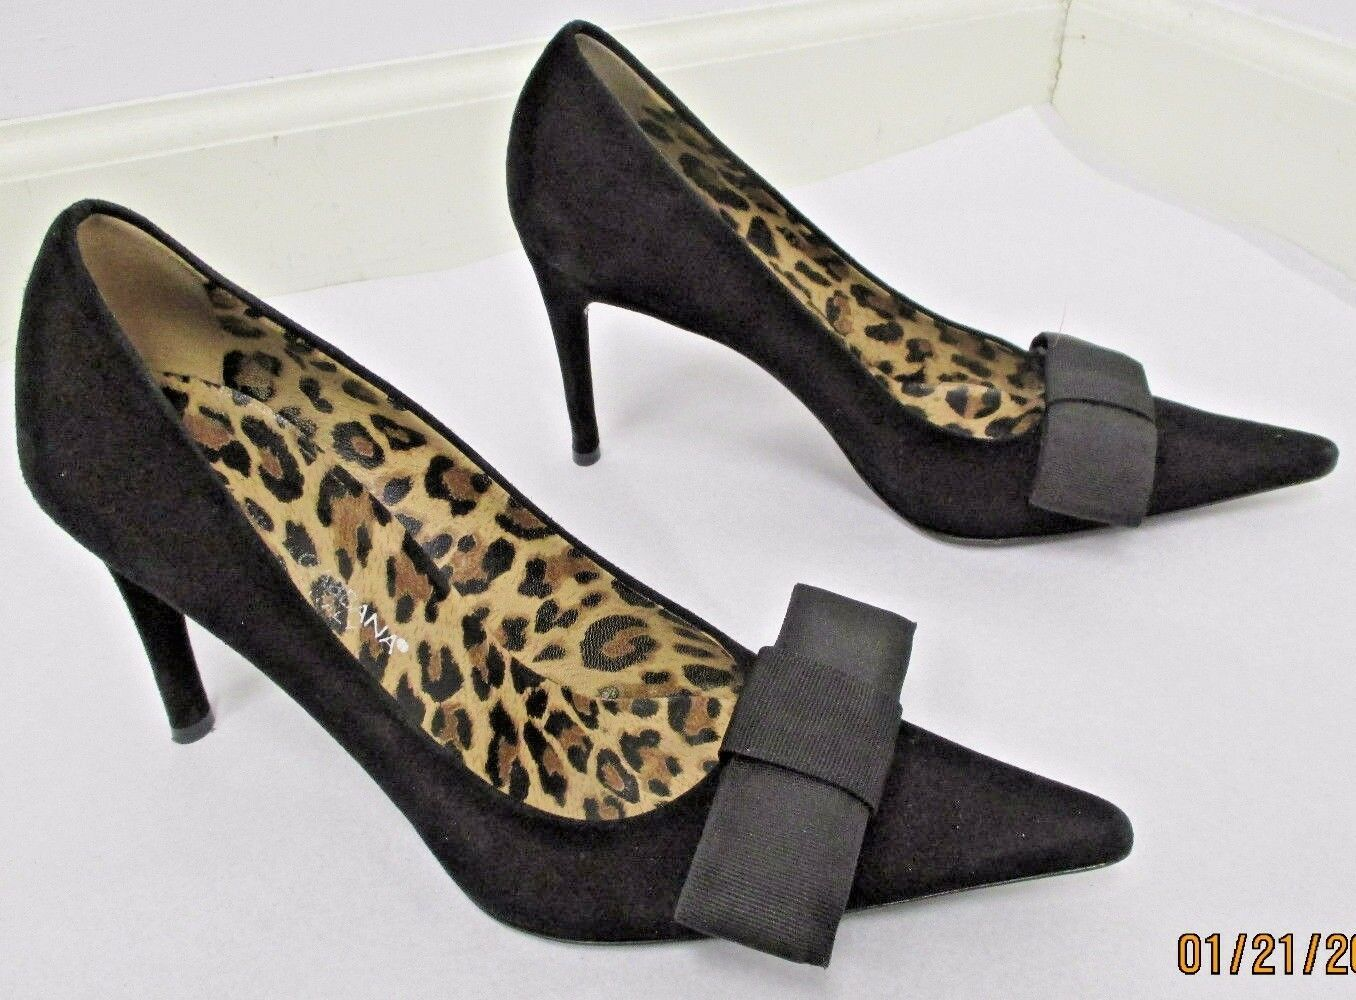 DOLCE & GABBANA Black Suede Pointed Toe Pumps w/ Fabric Bow at Front - Size 35 - $99.99